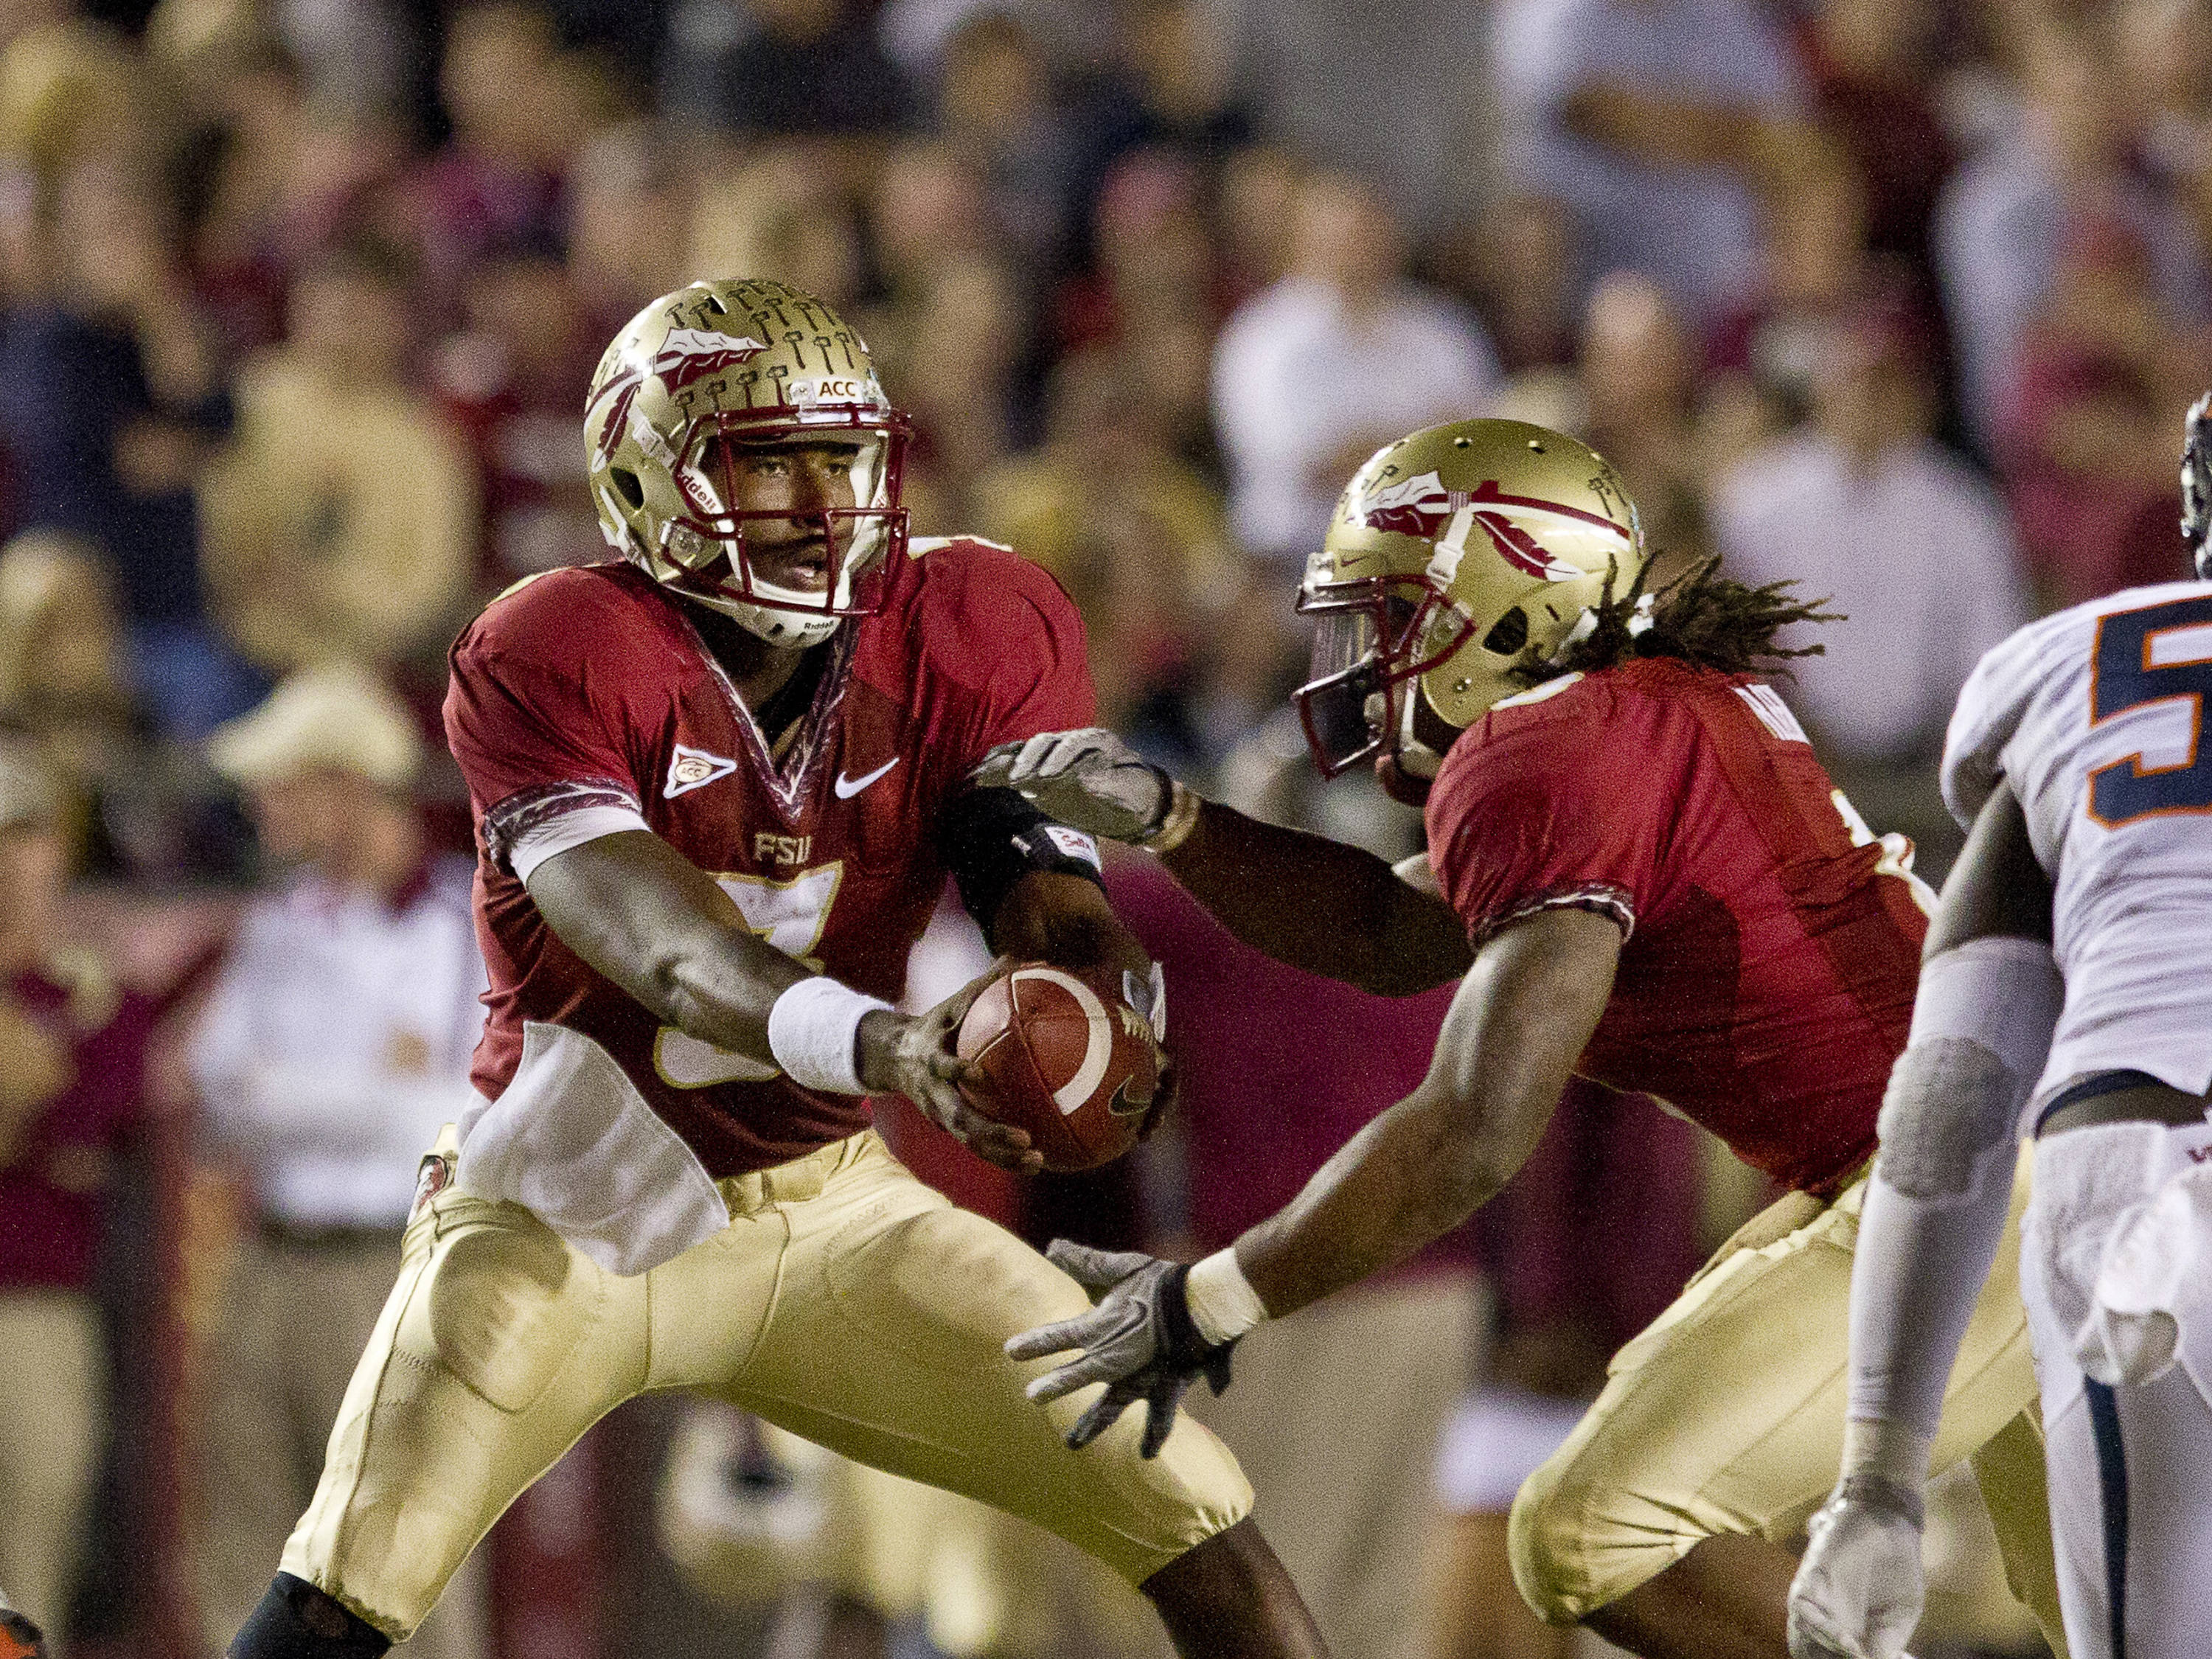 EJ Manuel (3) hands the ball off to Timmy Jernigan (8) during the game against Virginia on November 19, 2011.